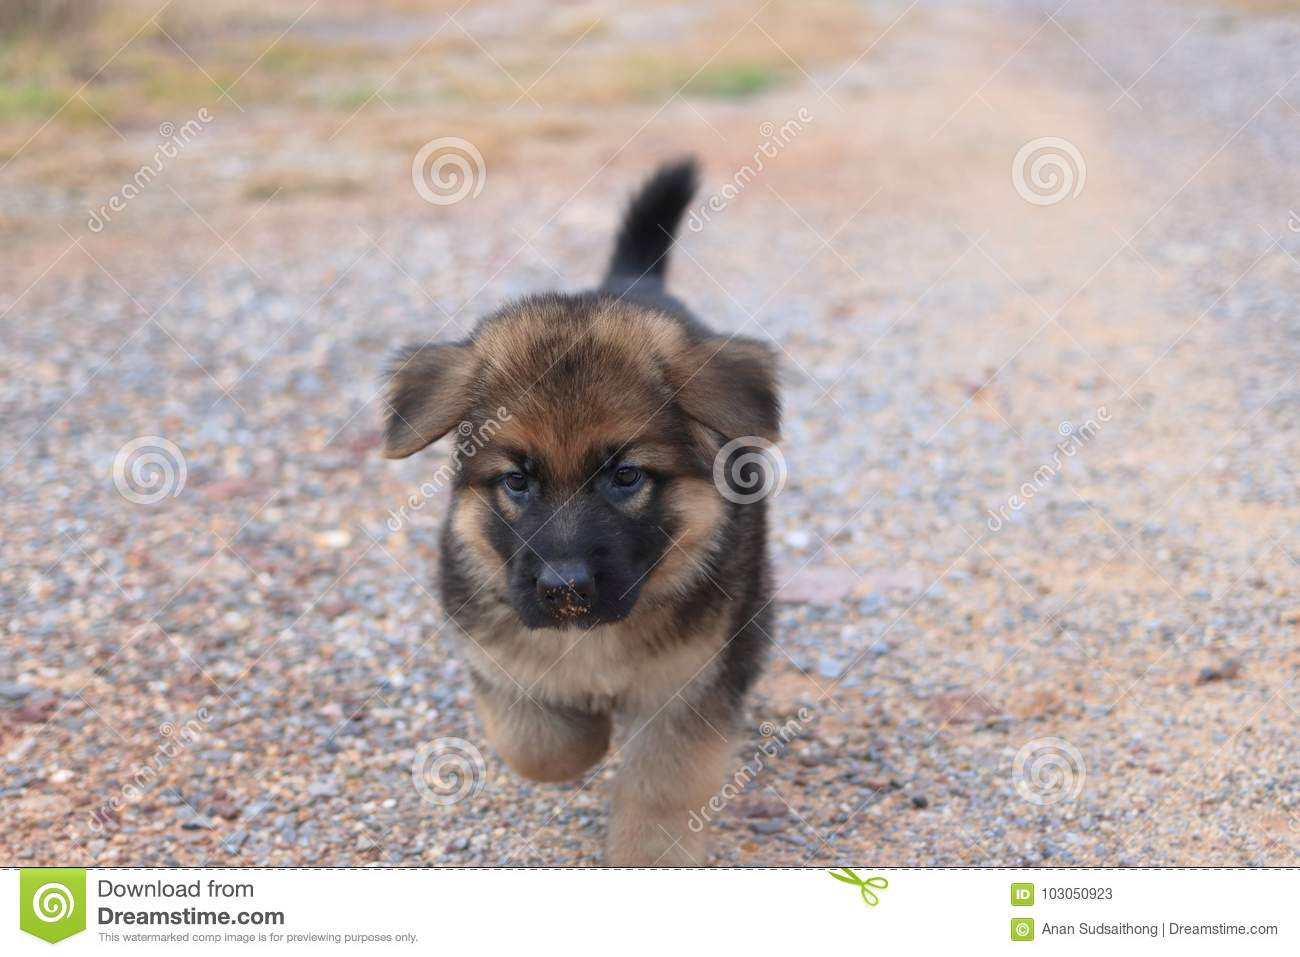 Lovely Cutie German Shepherd Puppy Walking At Outdoors Home Stock Image Image Of Adorable Beautiful 103050923